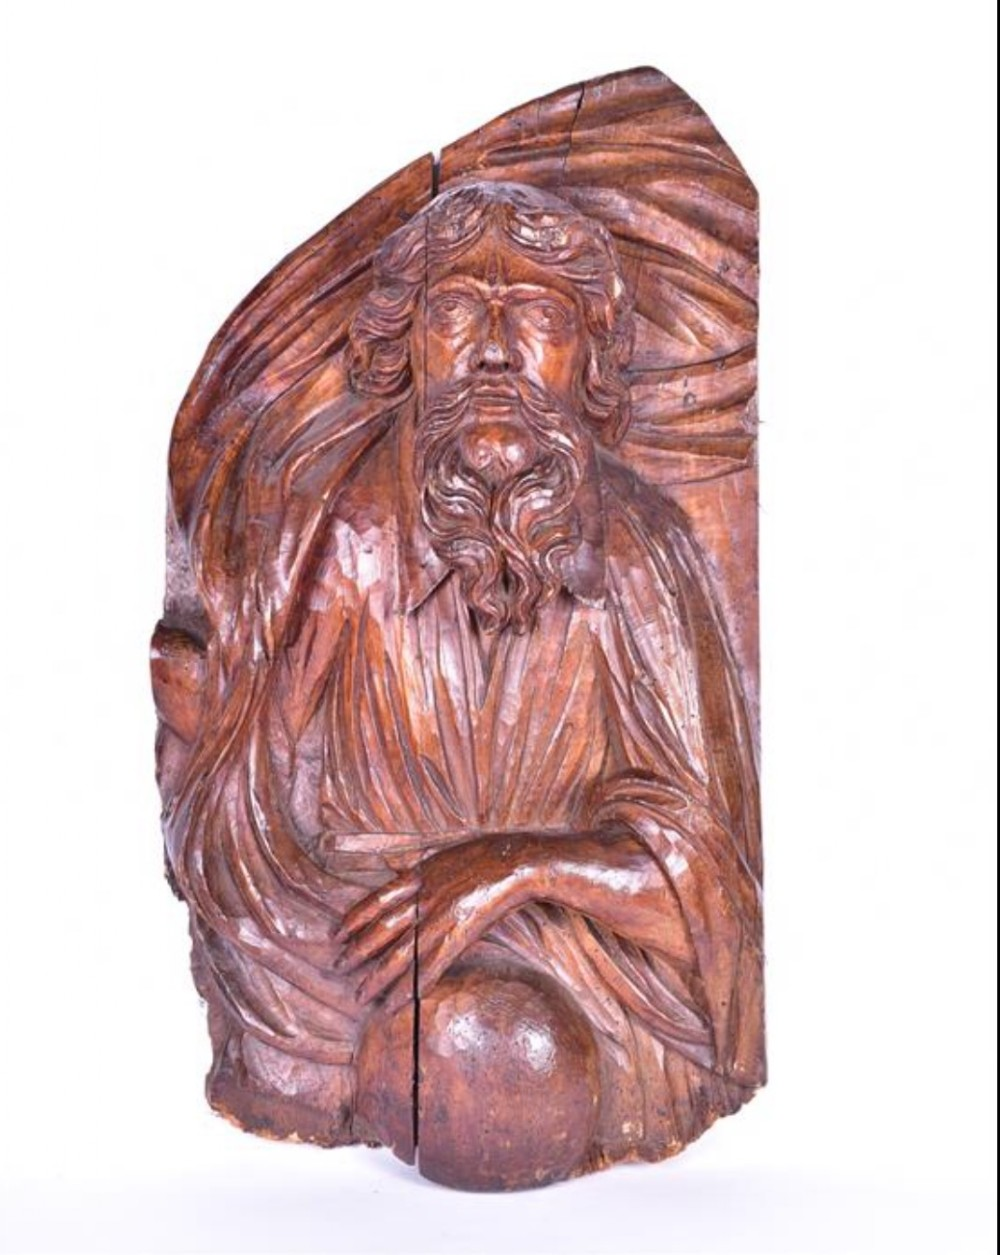 a large c17th limewood carving